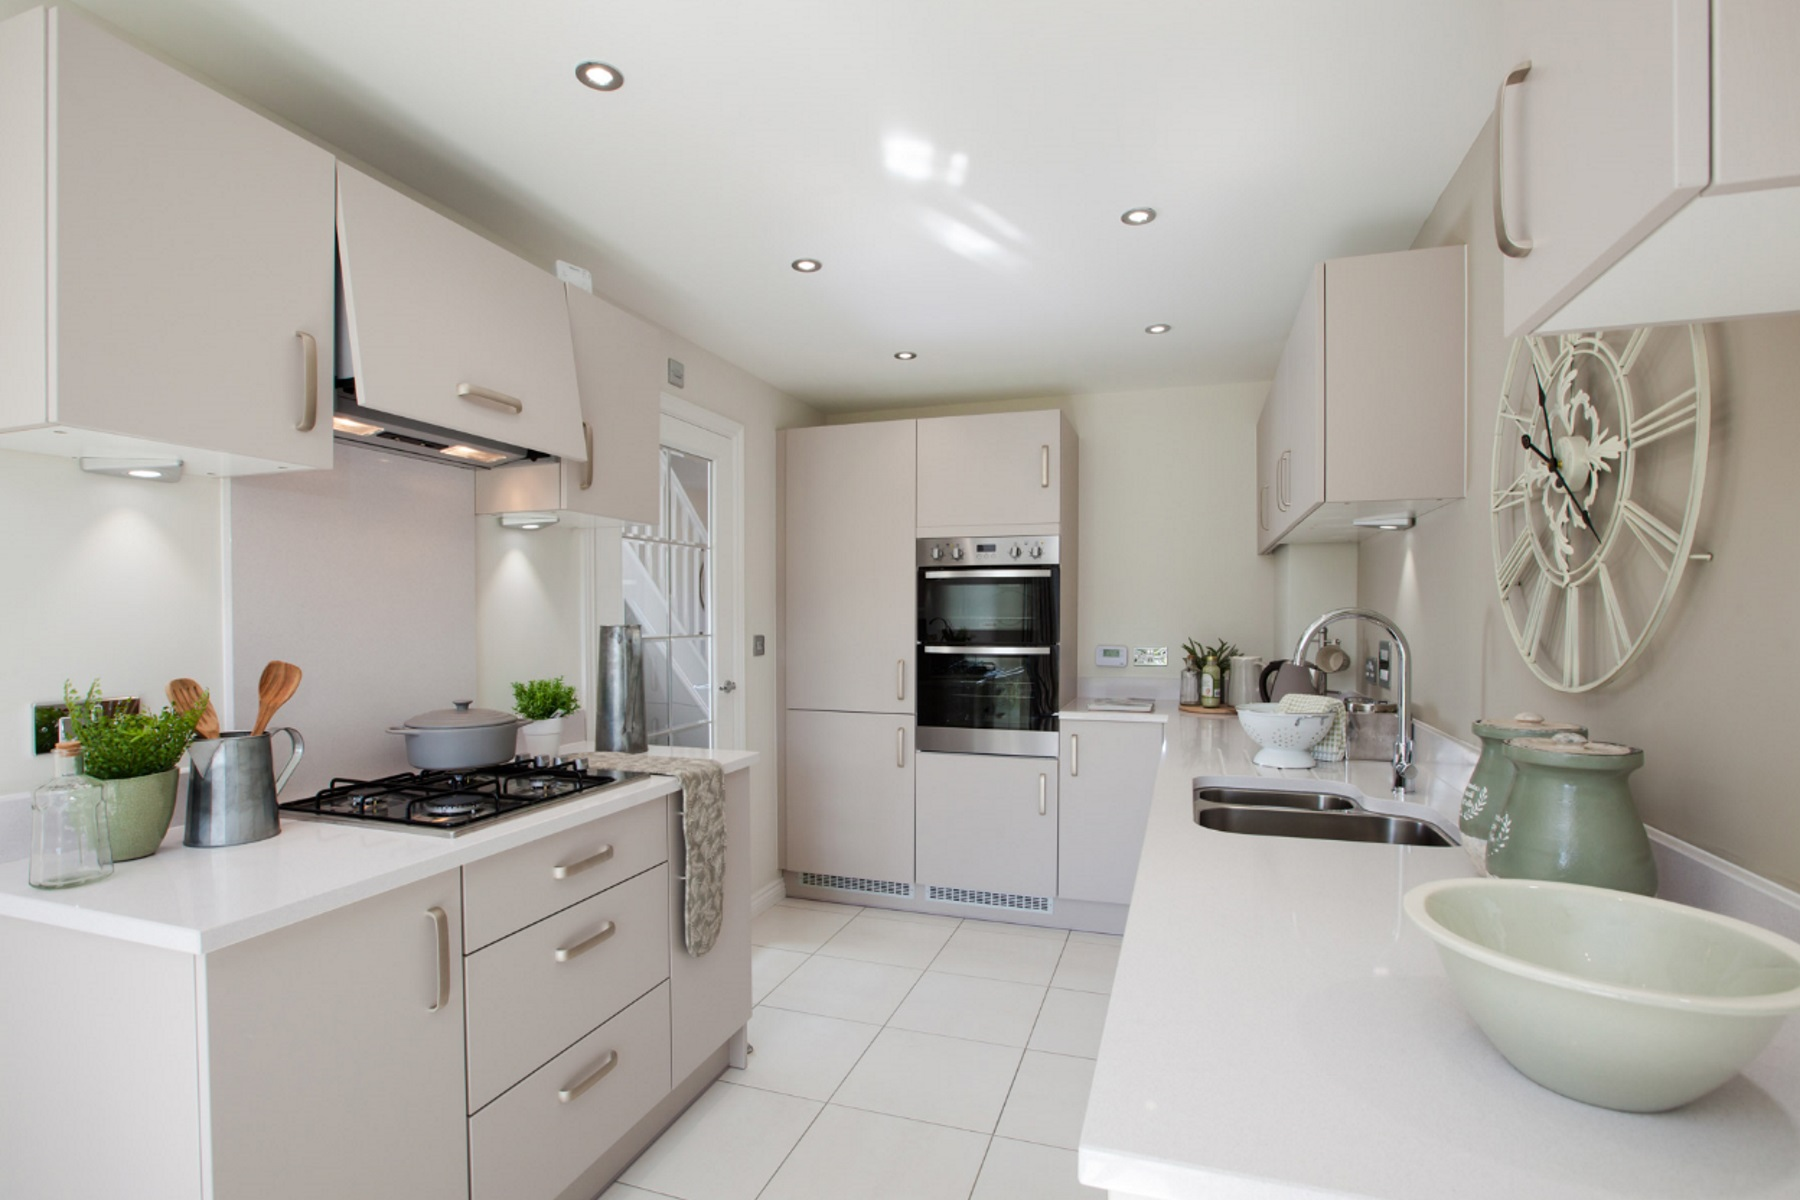 TW Exeter - Sherford - Elm example kitchen